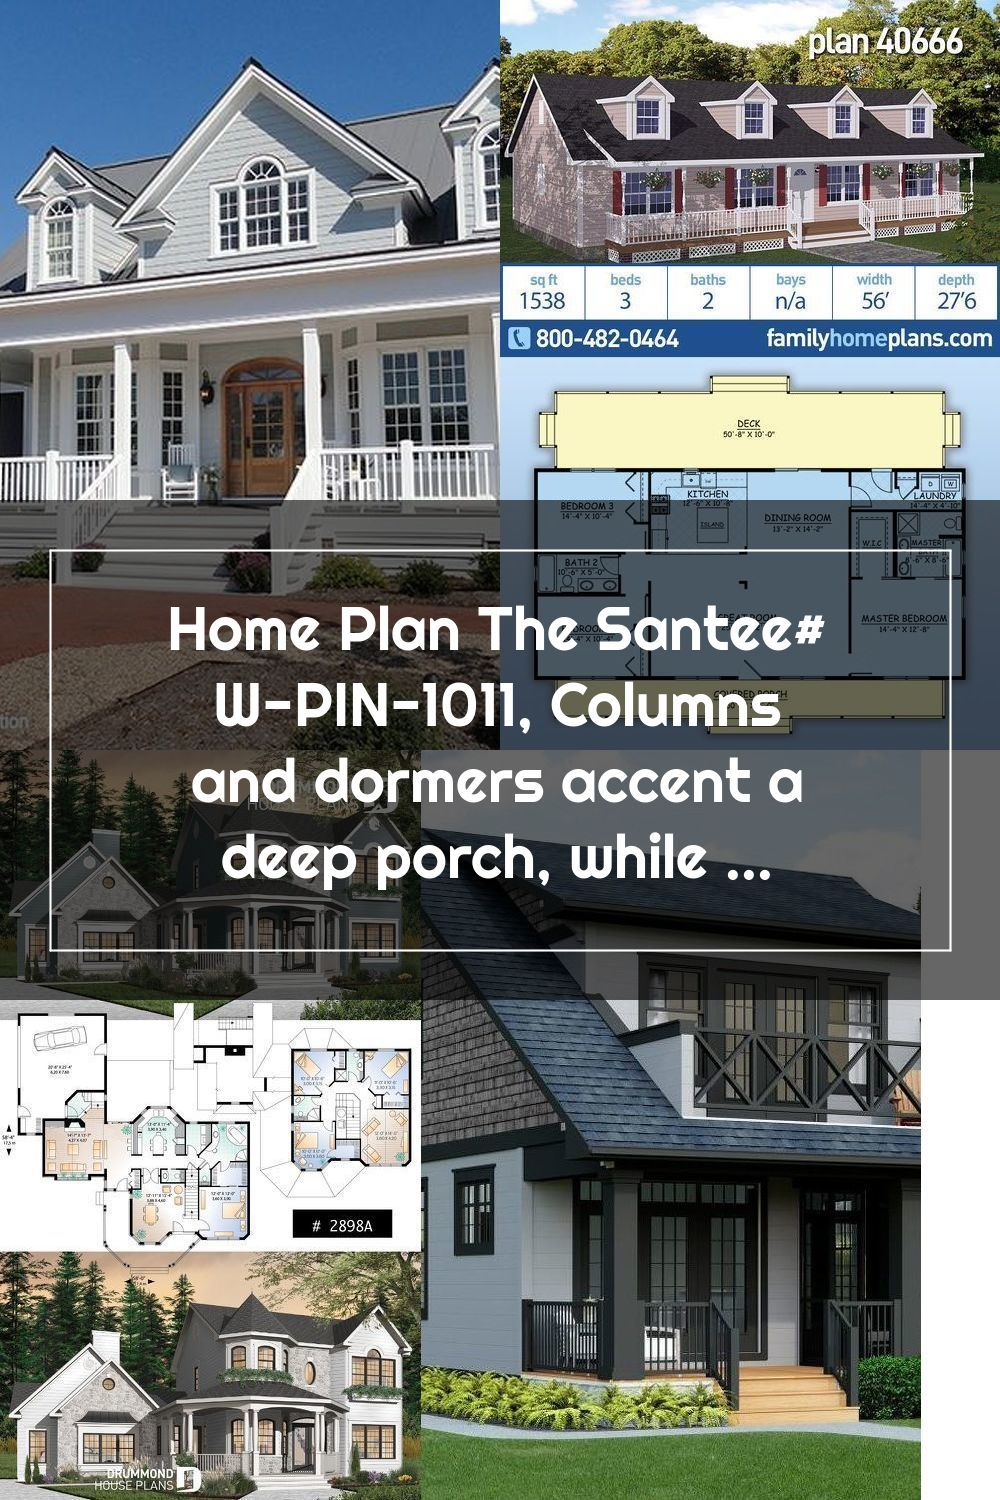 Home Plan The Santee W Pin 1011 Columns And Dormers Accent A Deep Porch In 2020 House Plans How To Plan Dormers